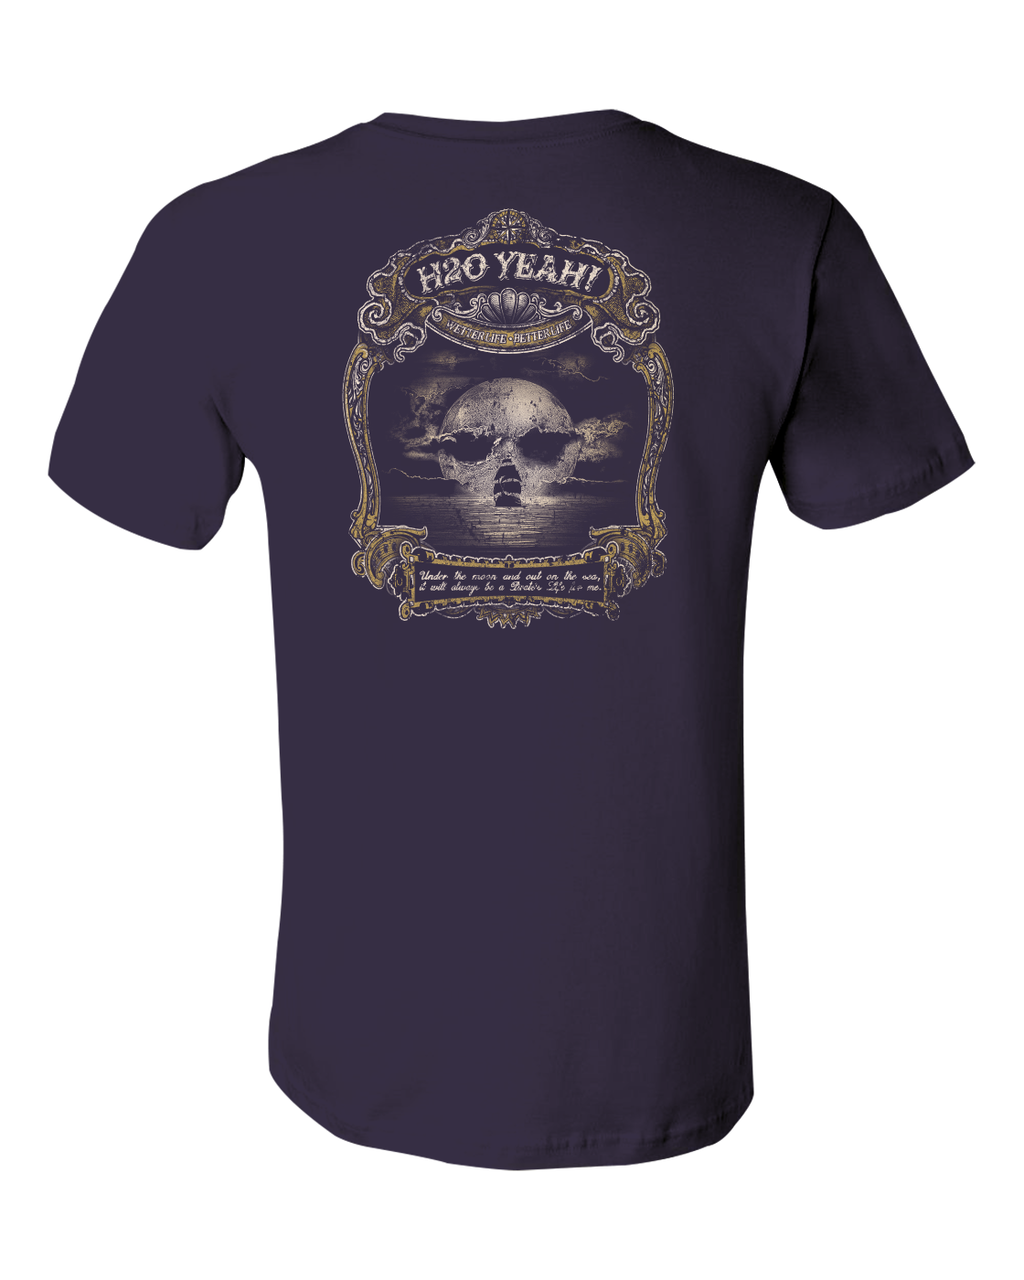 H2o Yeah! Pirate Skull Moon tee